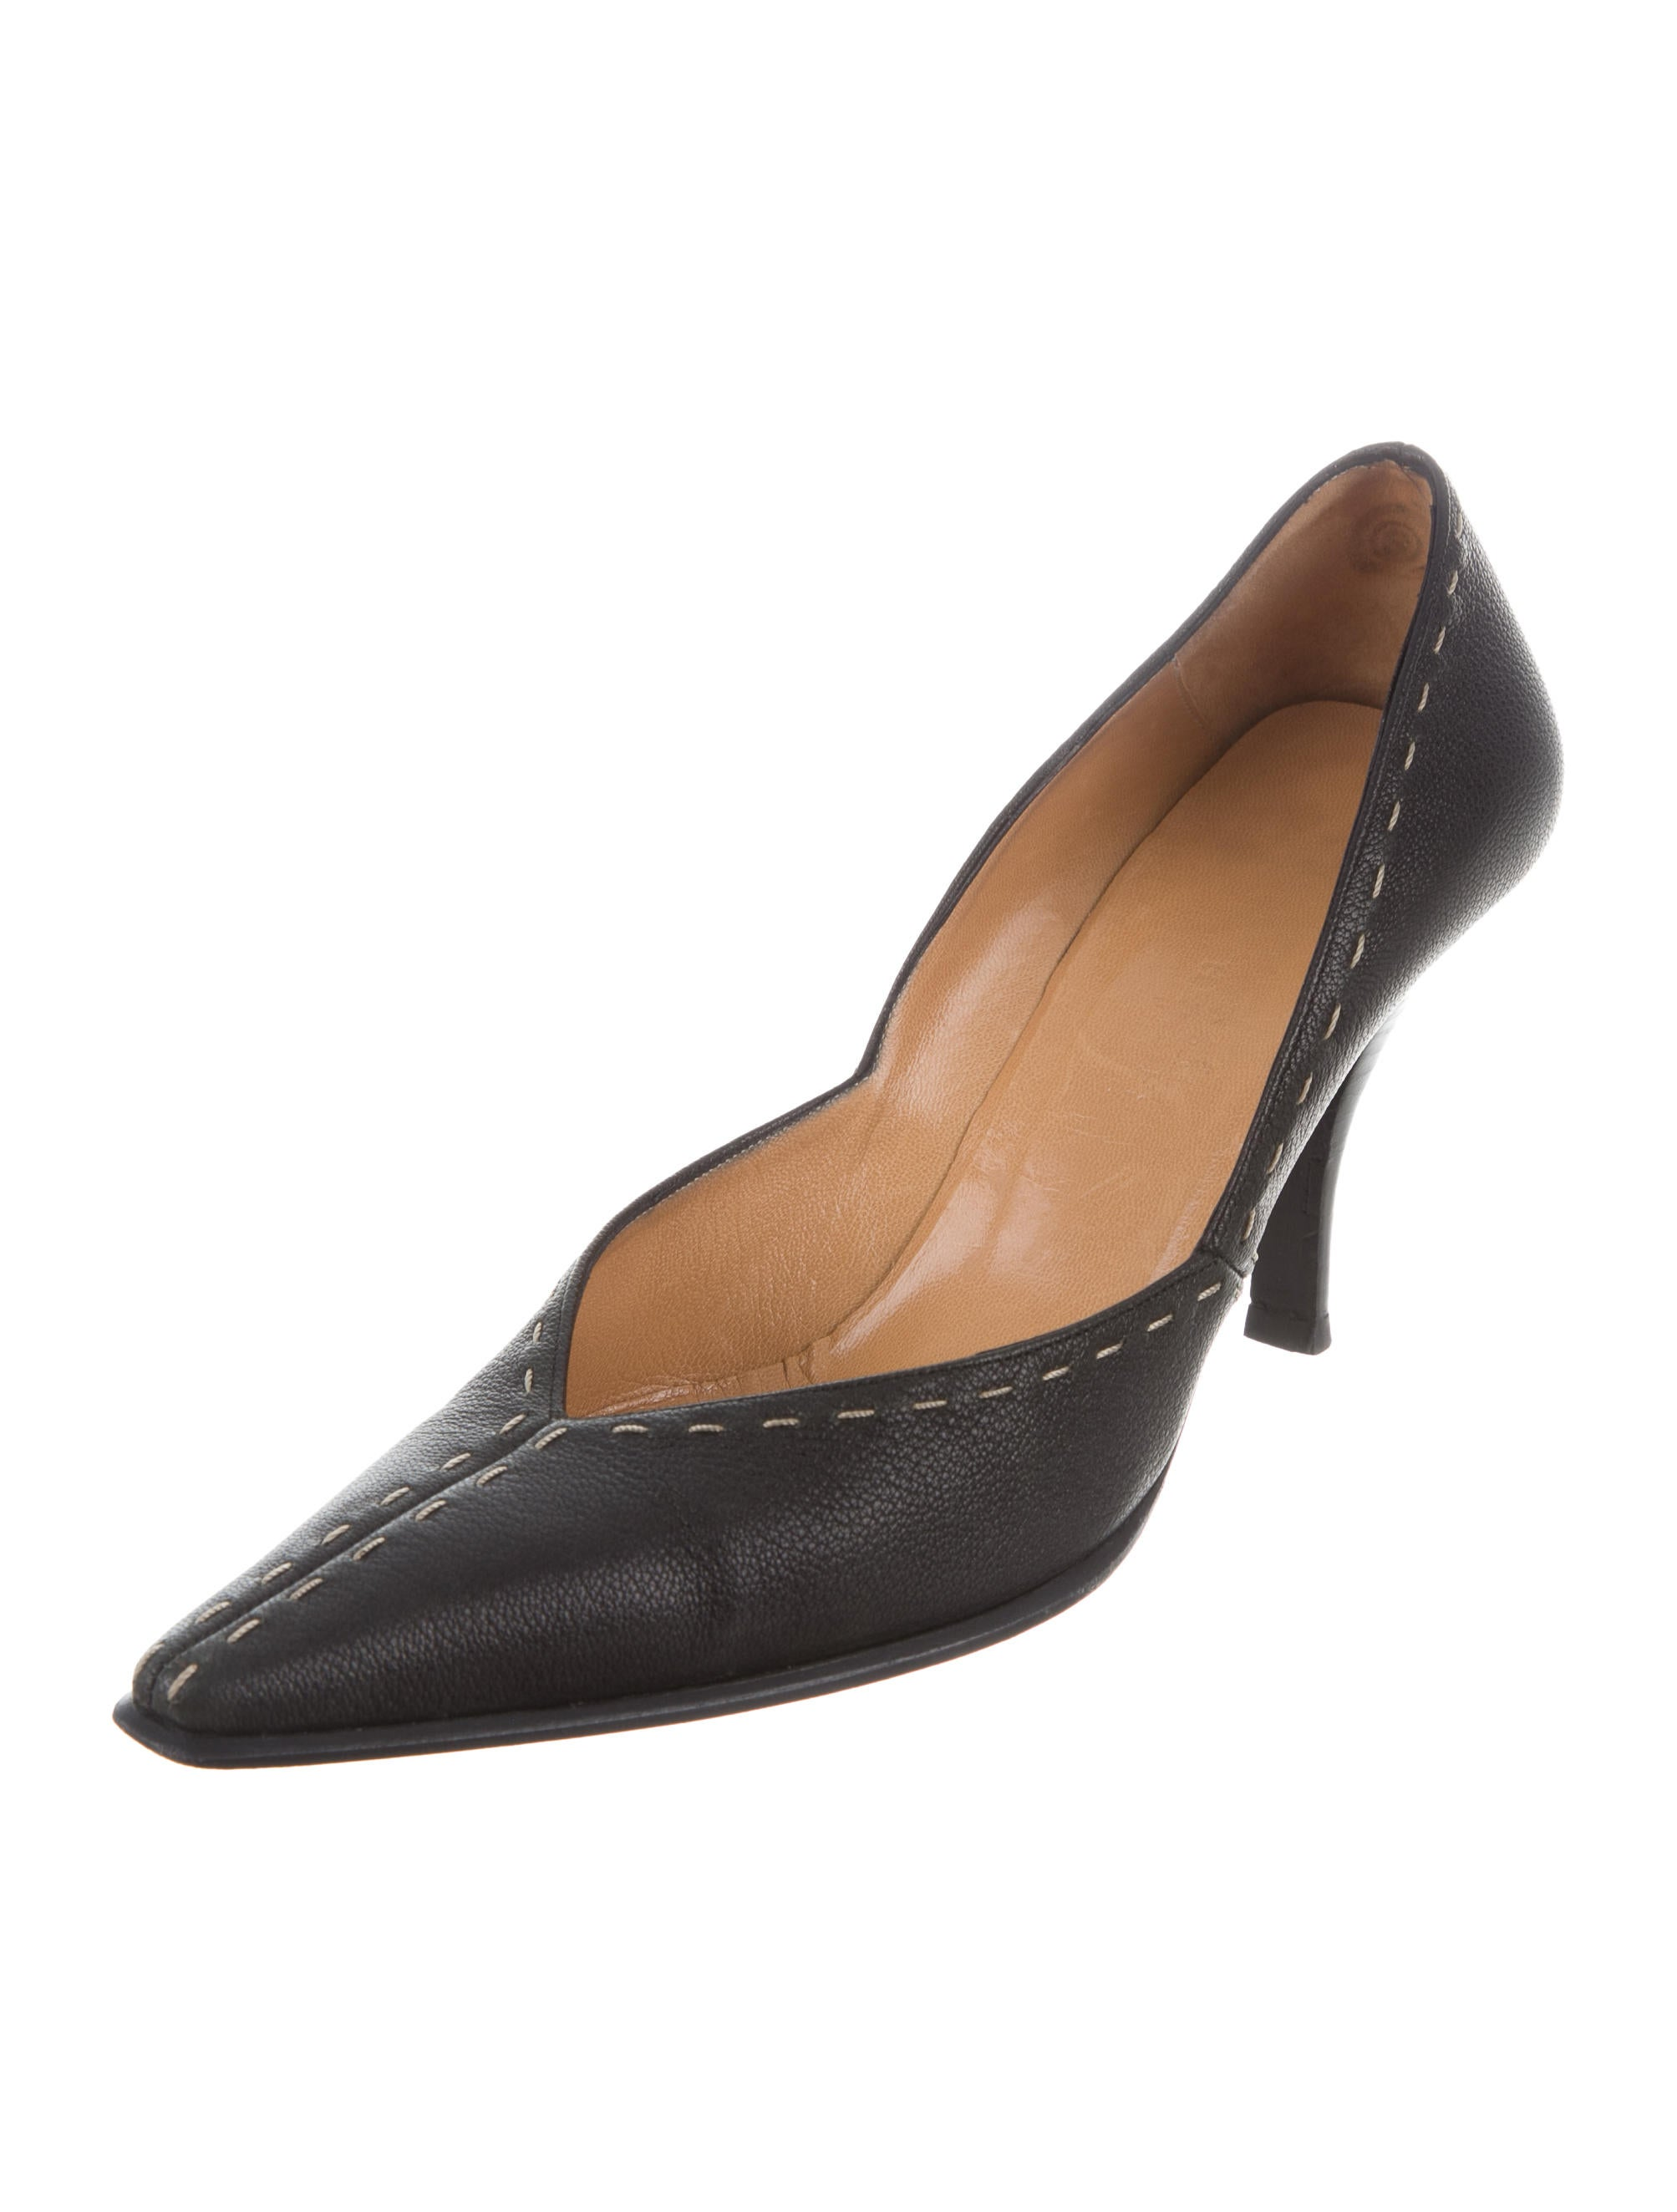 hermes women shoes - photo #47